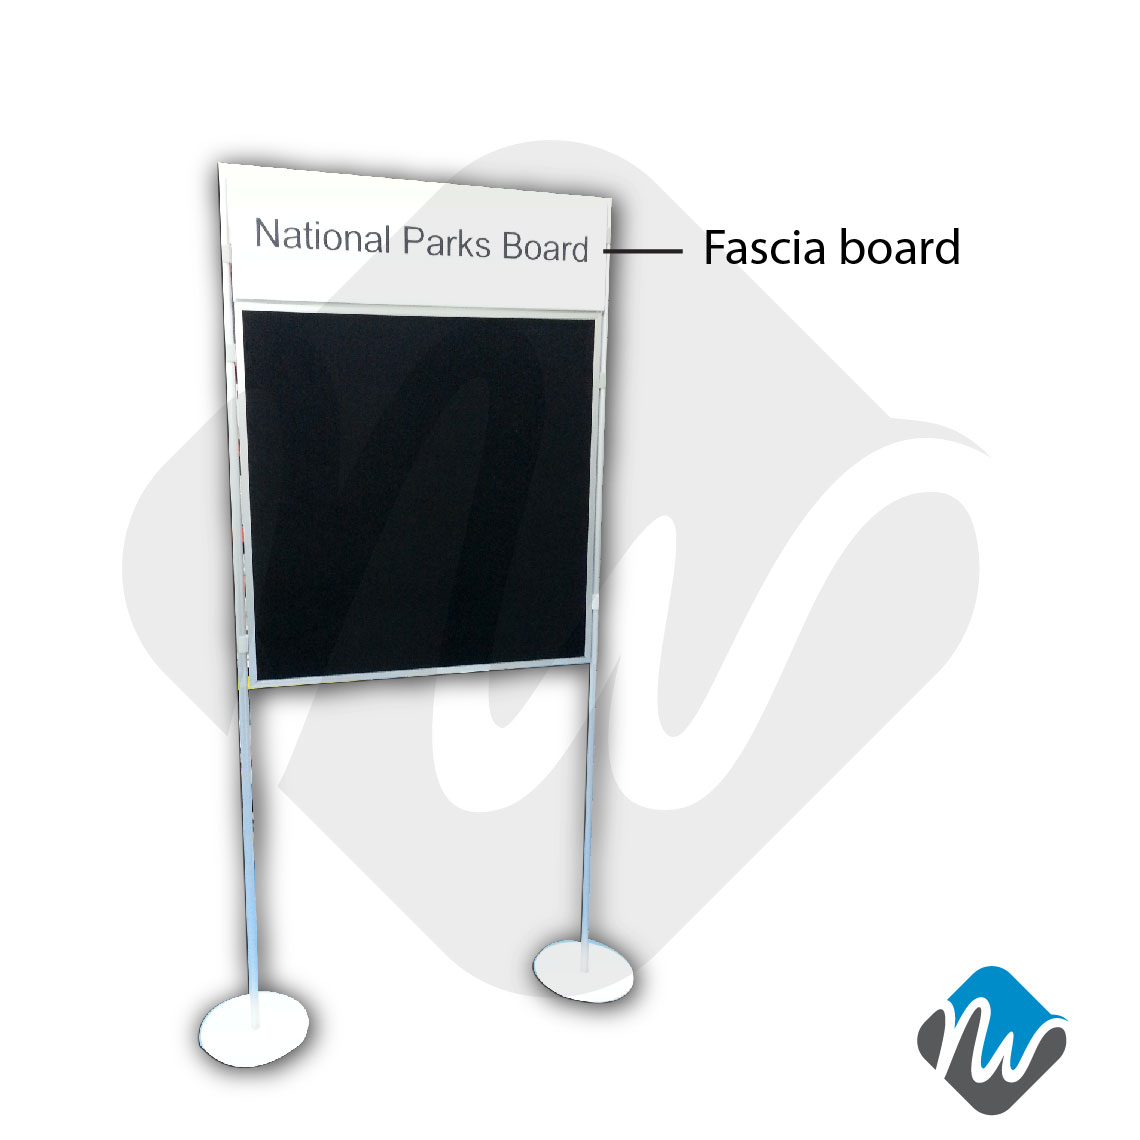 Fascia Board Exhibition Booth : Clip and pole panel system